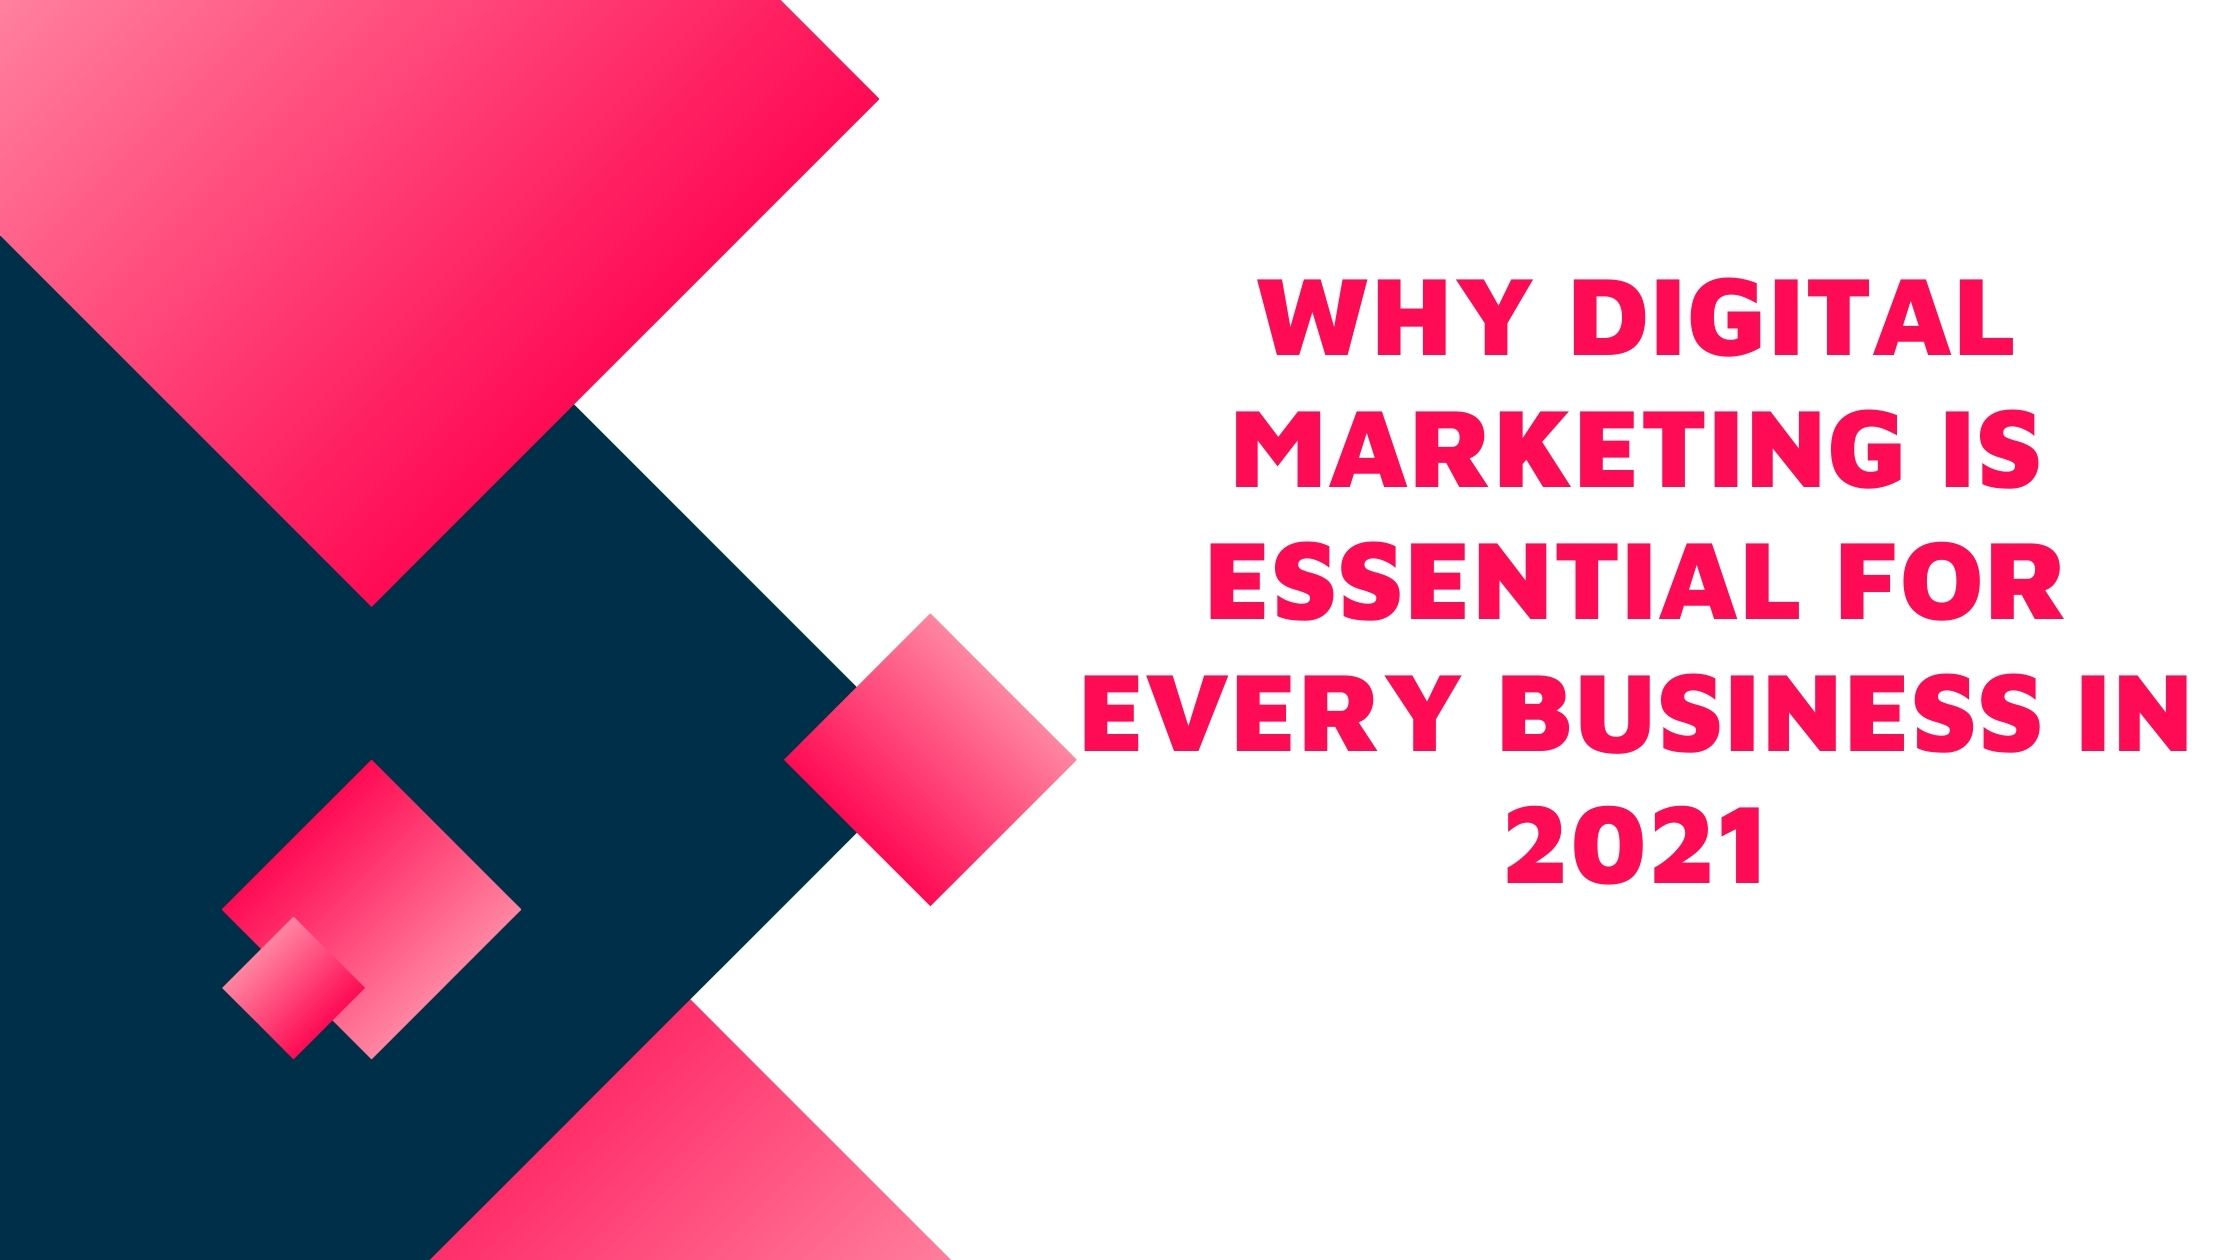 Why Digital Marketing is Essential for Every Business in 2021